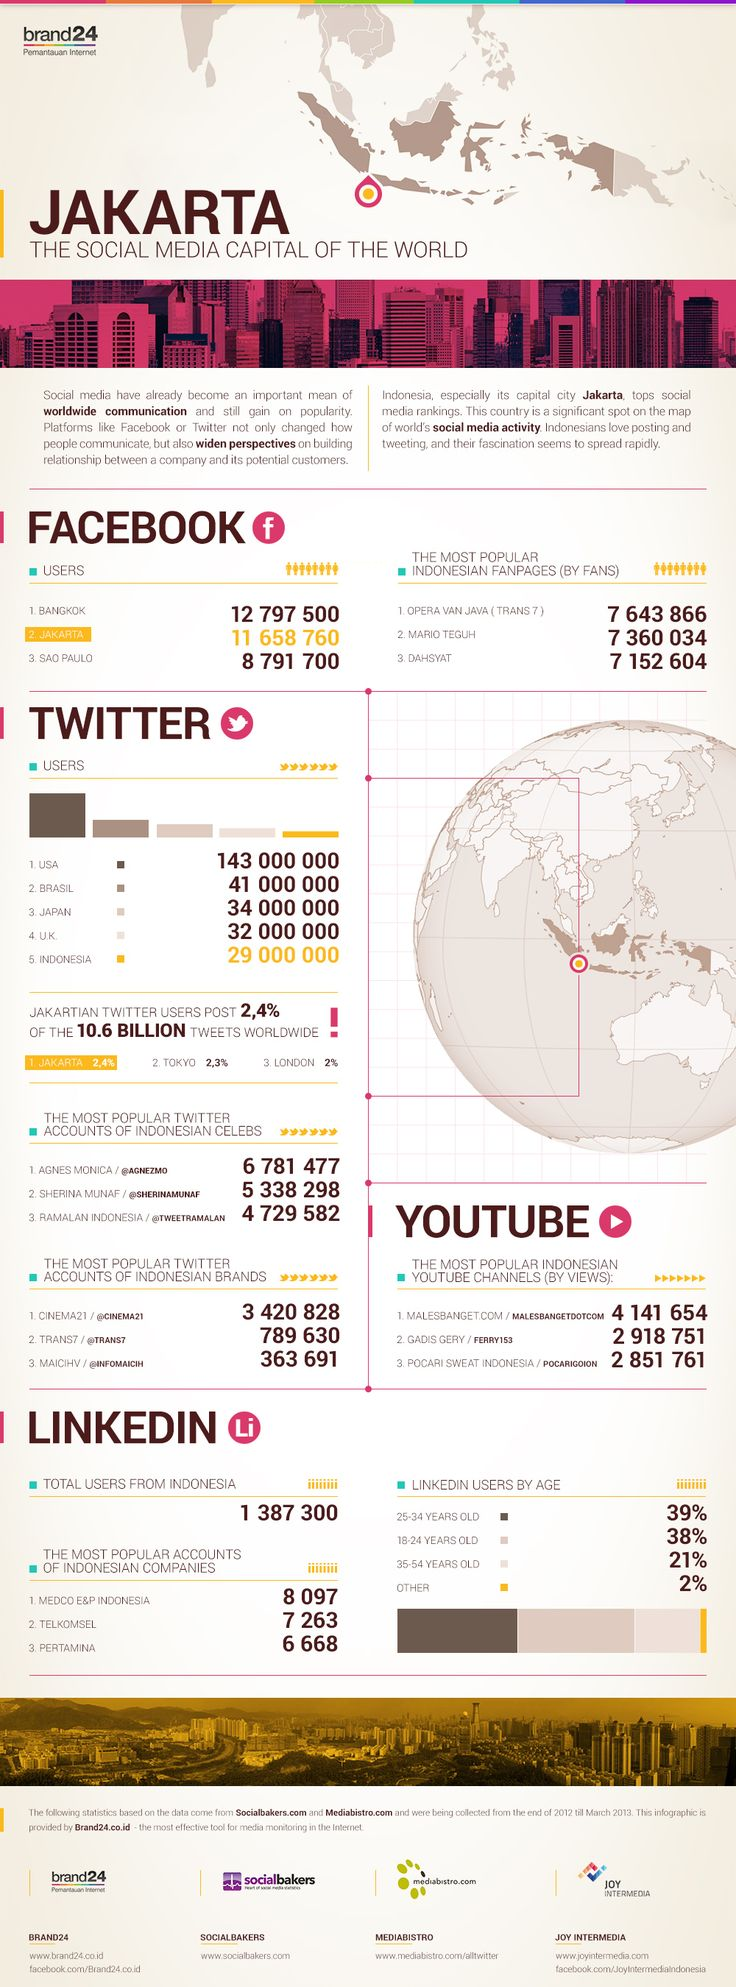 Brand24.co.id, an Indonesian company that monitors social marketing online, has come out with this interesting new infographic about Indonesia's online socializing. It shows how the country – and particularly residents of the capital, Jakarta – has taken to sites like Facebook, Twitter, Linkedin, and YouTube in huge numbers.